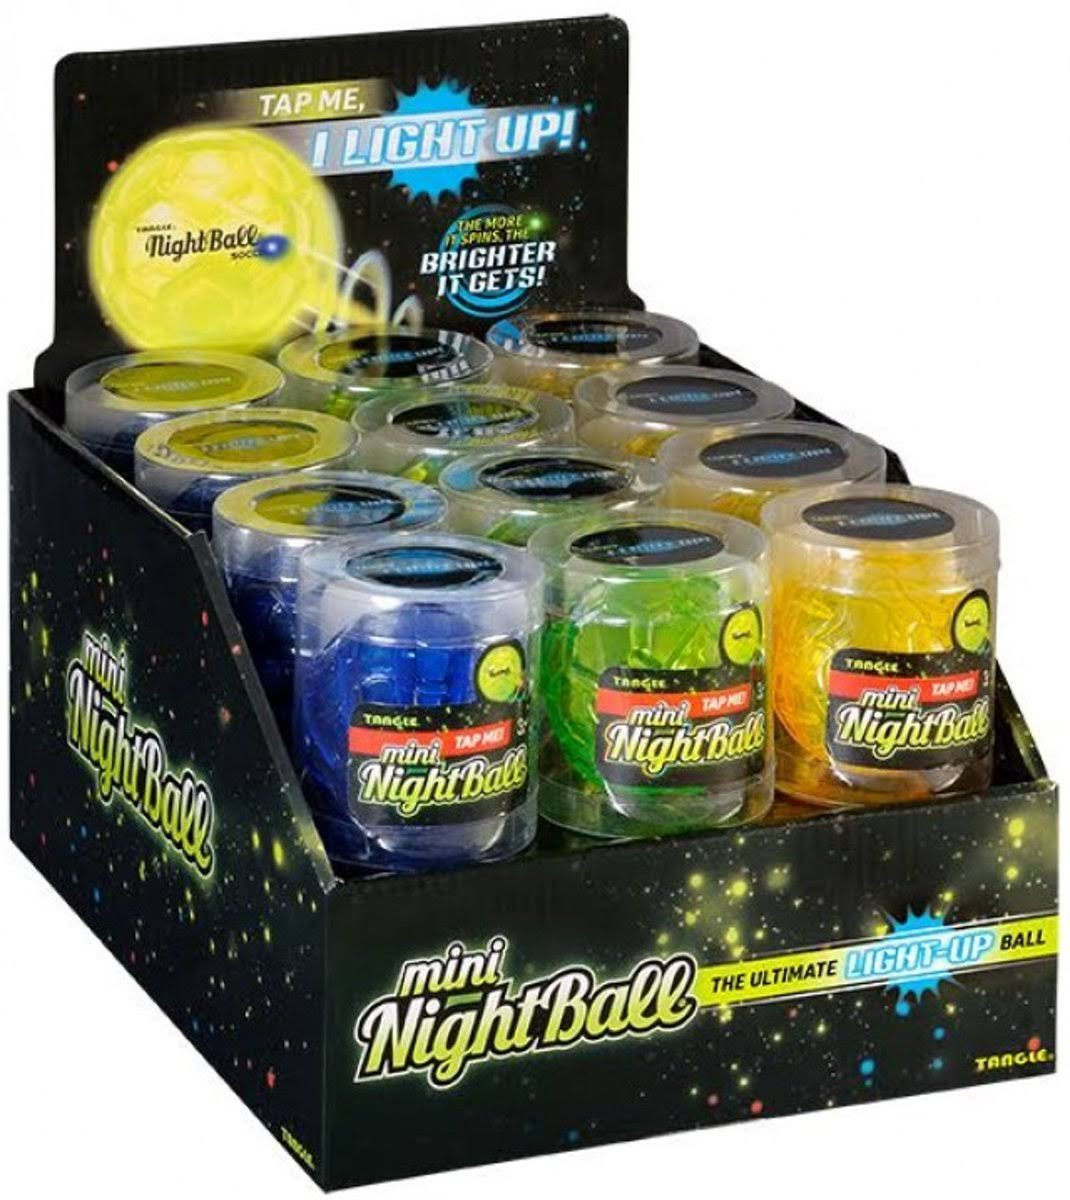 Tangle Mini Nightball - Color May Vary